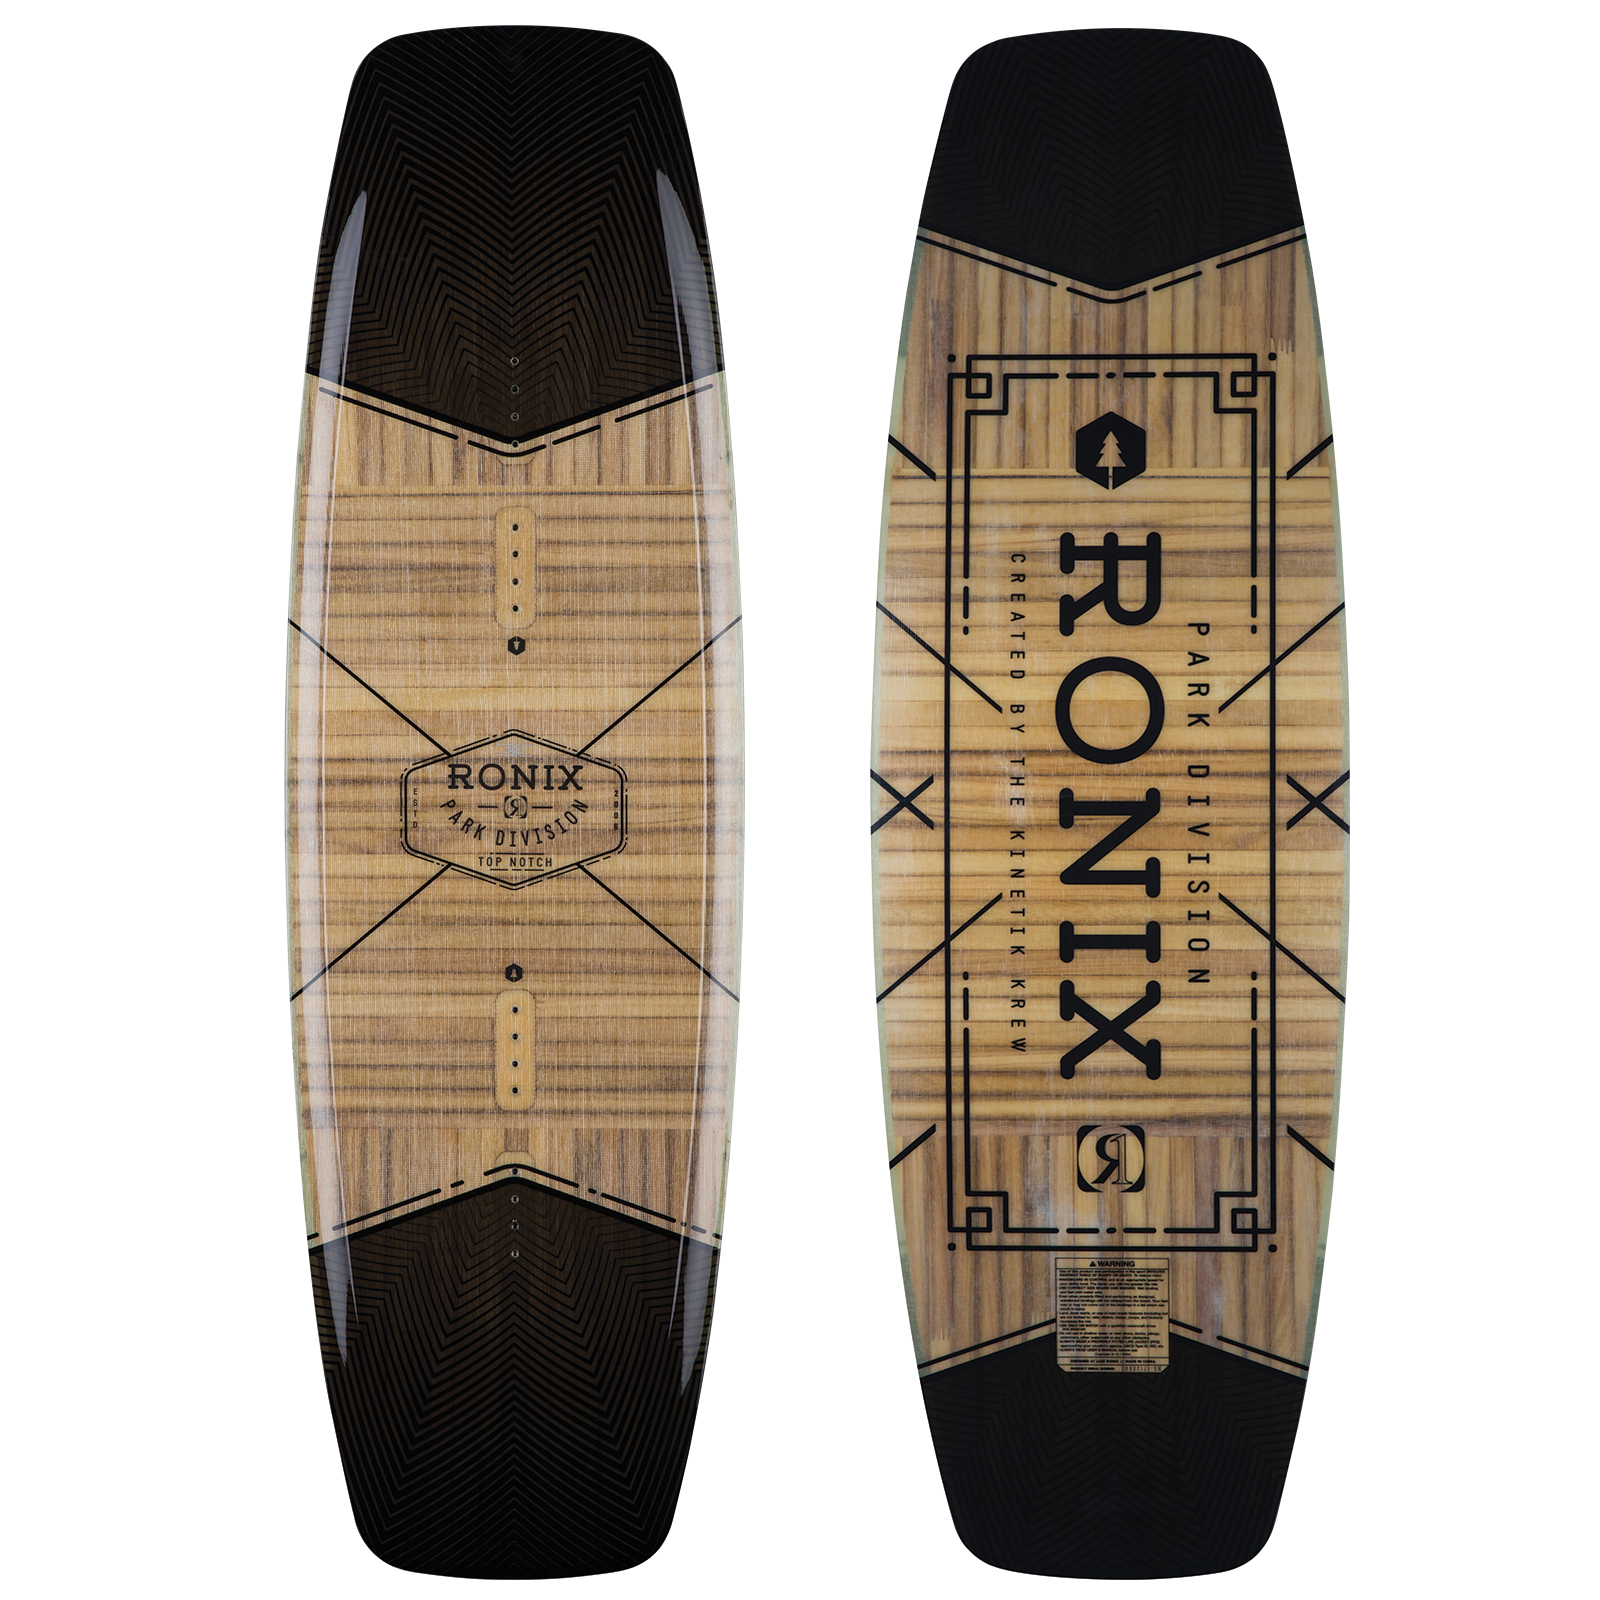 TOP NOTCH NU CORE 2.0 133 JR. WAKEBOARD RONIX 2018